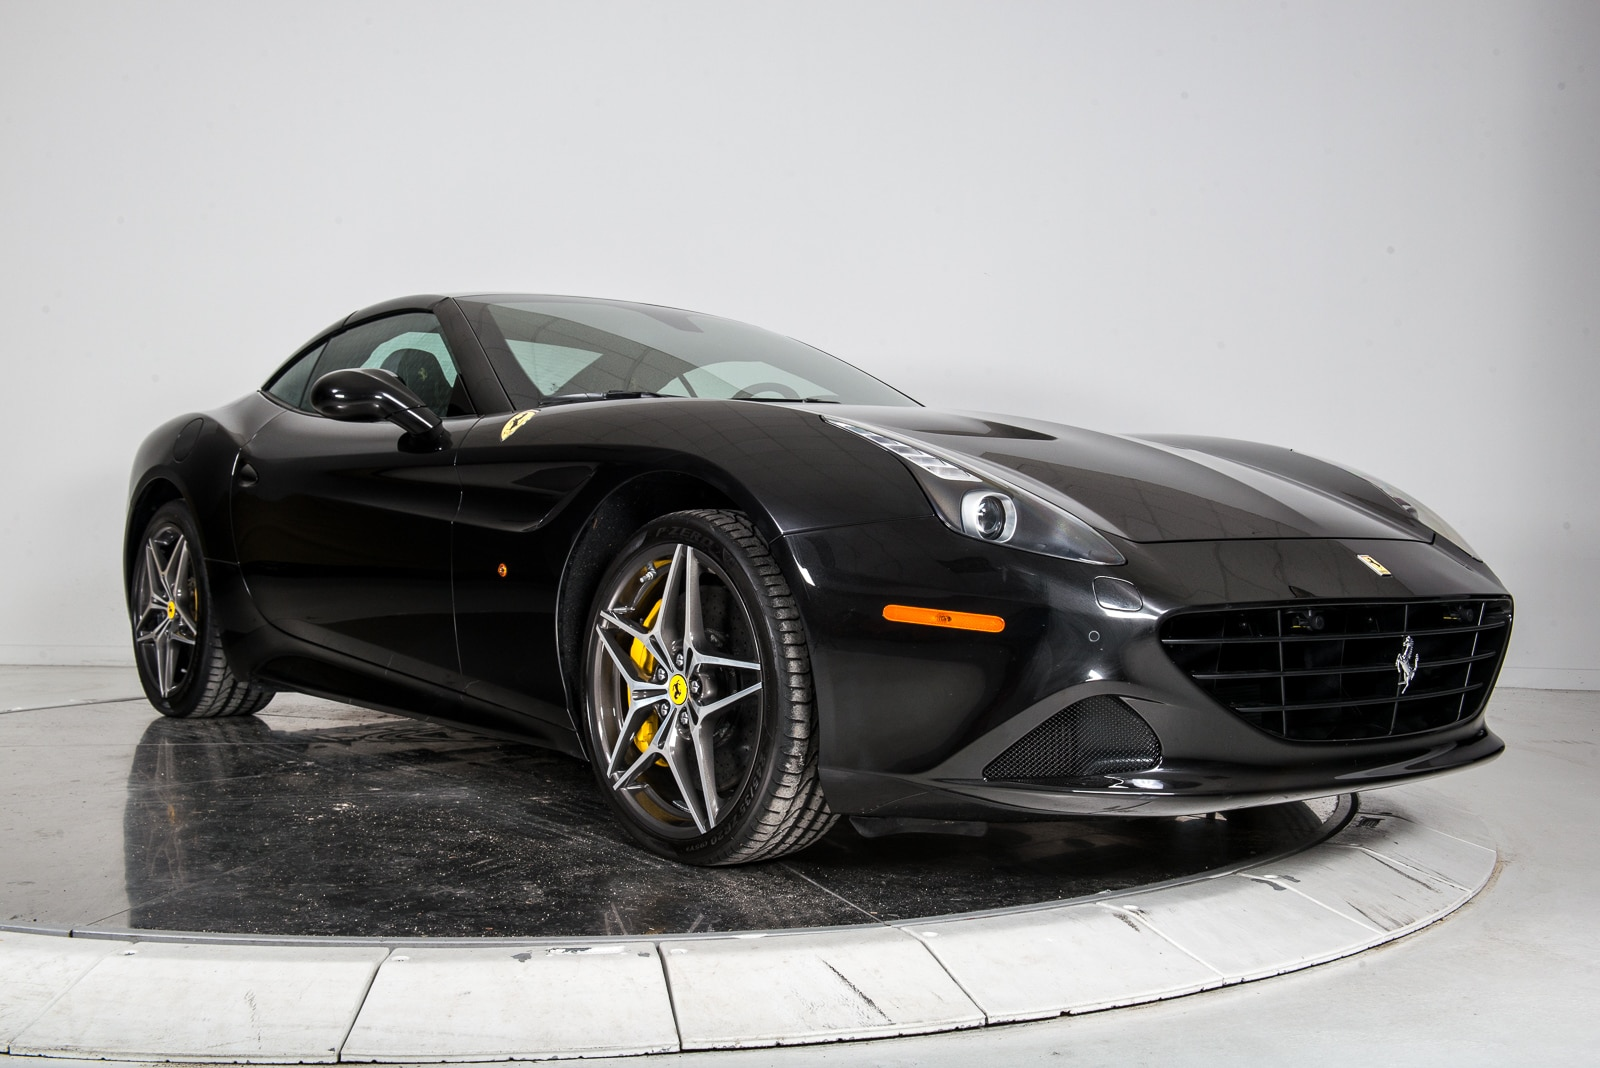 used 2016 ferrari california t for sale plainview ny near long island vin zff77xja8g0213753. Black Bedroom Furniture Sets. Home Design Ideas